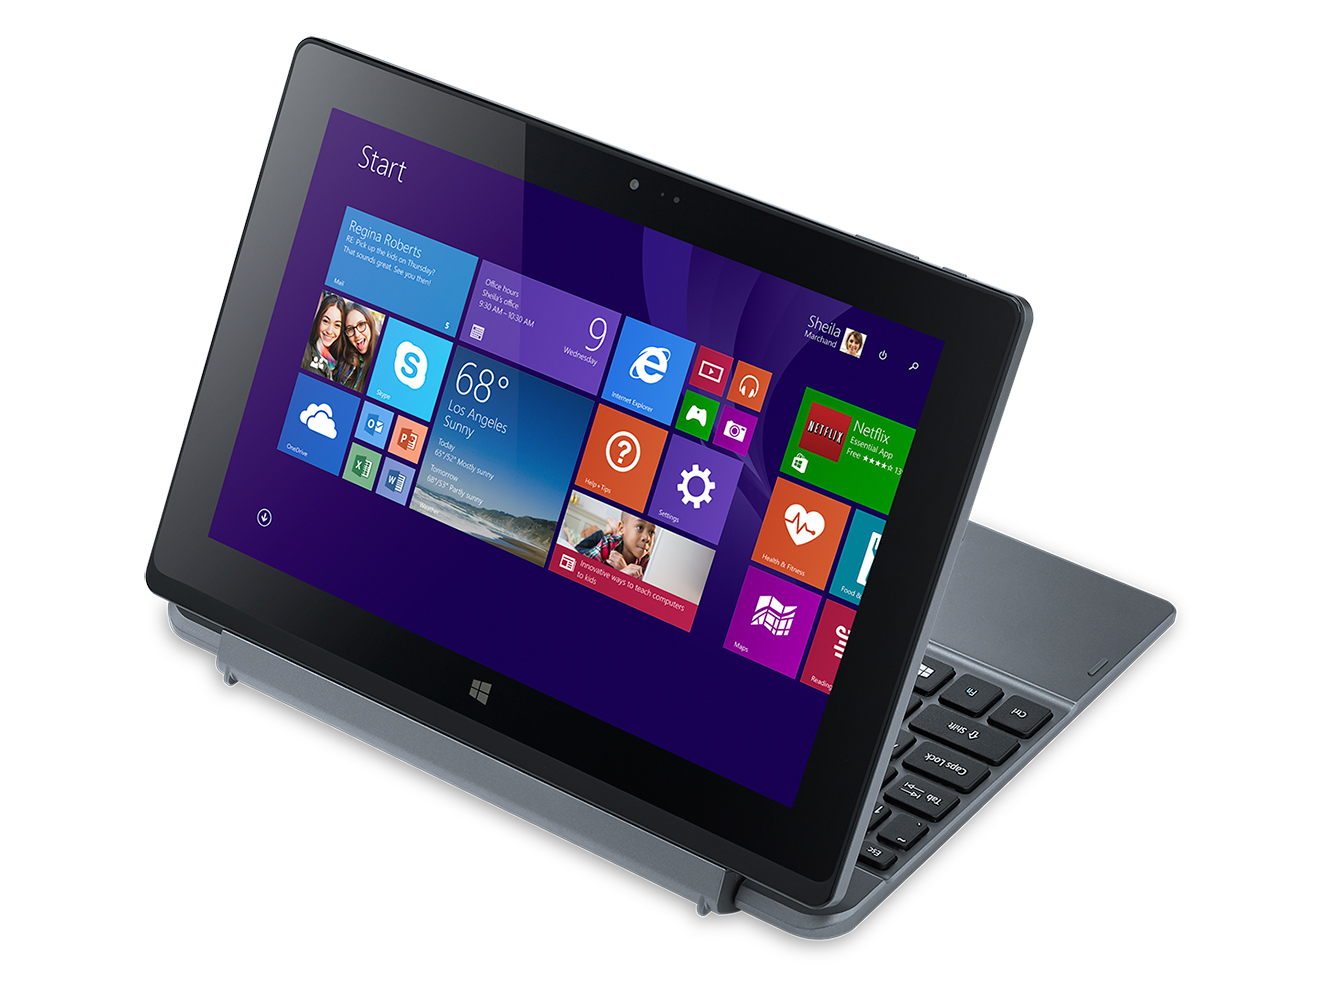 Acer One 10 S1002 17HU Convertible Review 161554 0 besides FAQ LectureHallCrestron furthermore Lenovo Legion Y520 15IKBN 7300HQ GTX 1050 Ti FHD Laptop Review 256682 0 likewise Muscular Dystrophy besides 1w. on laptop power section